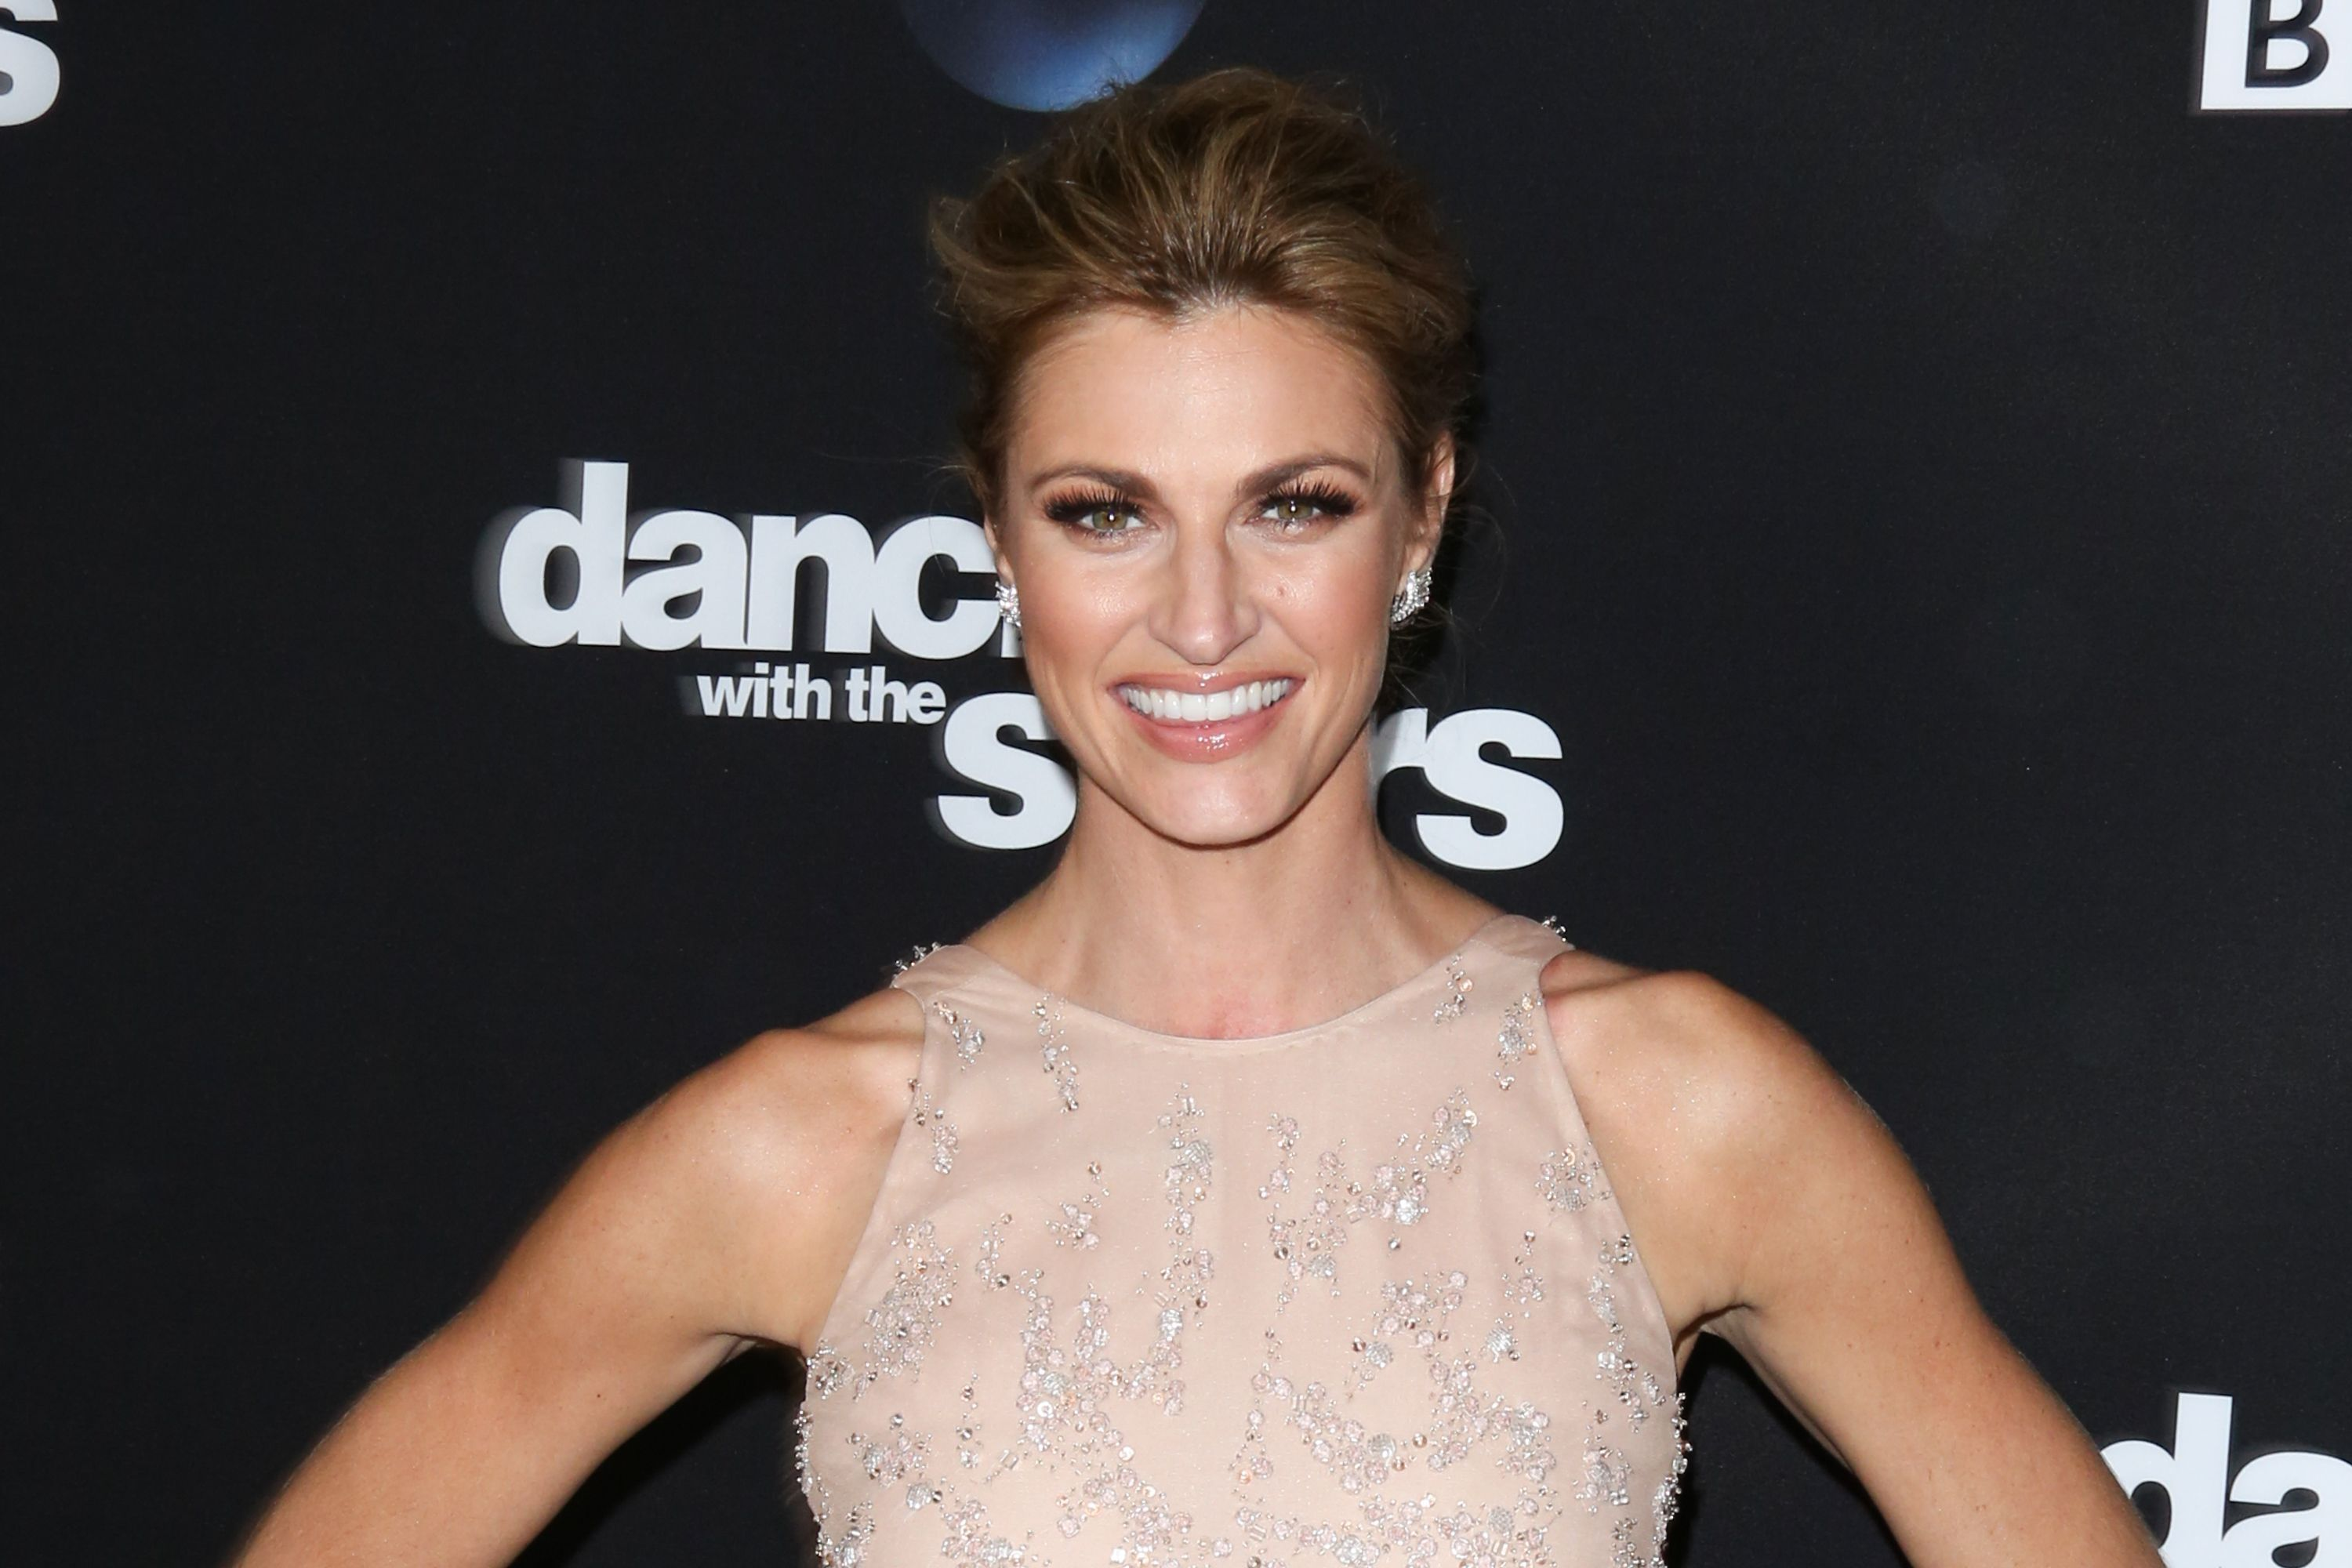 Erin Andrews Reveals She S Undergoing Ivf I Want To Have Kids But